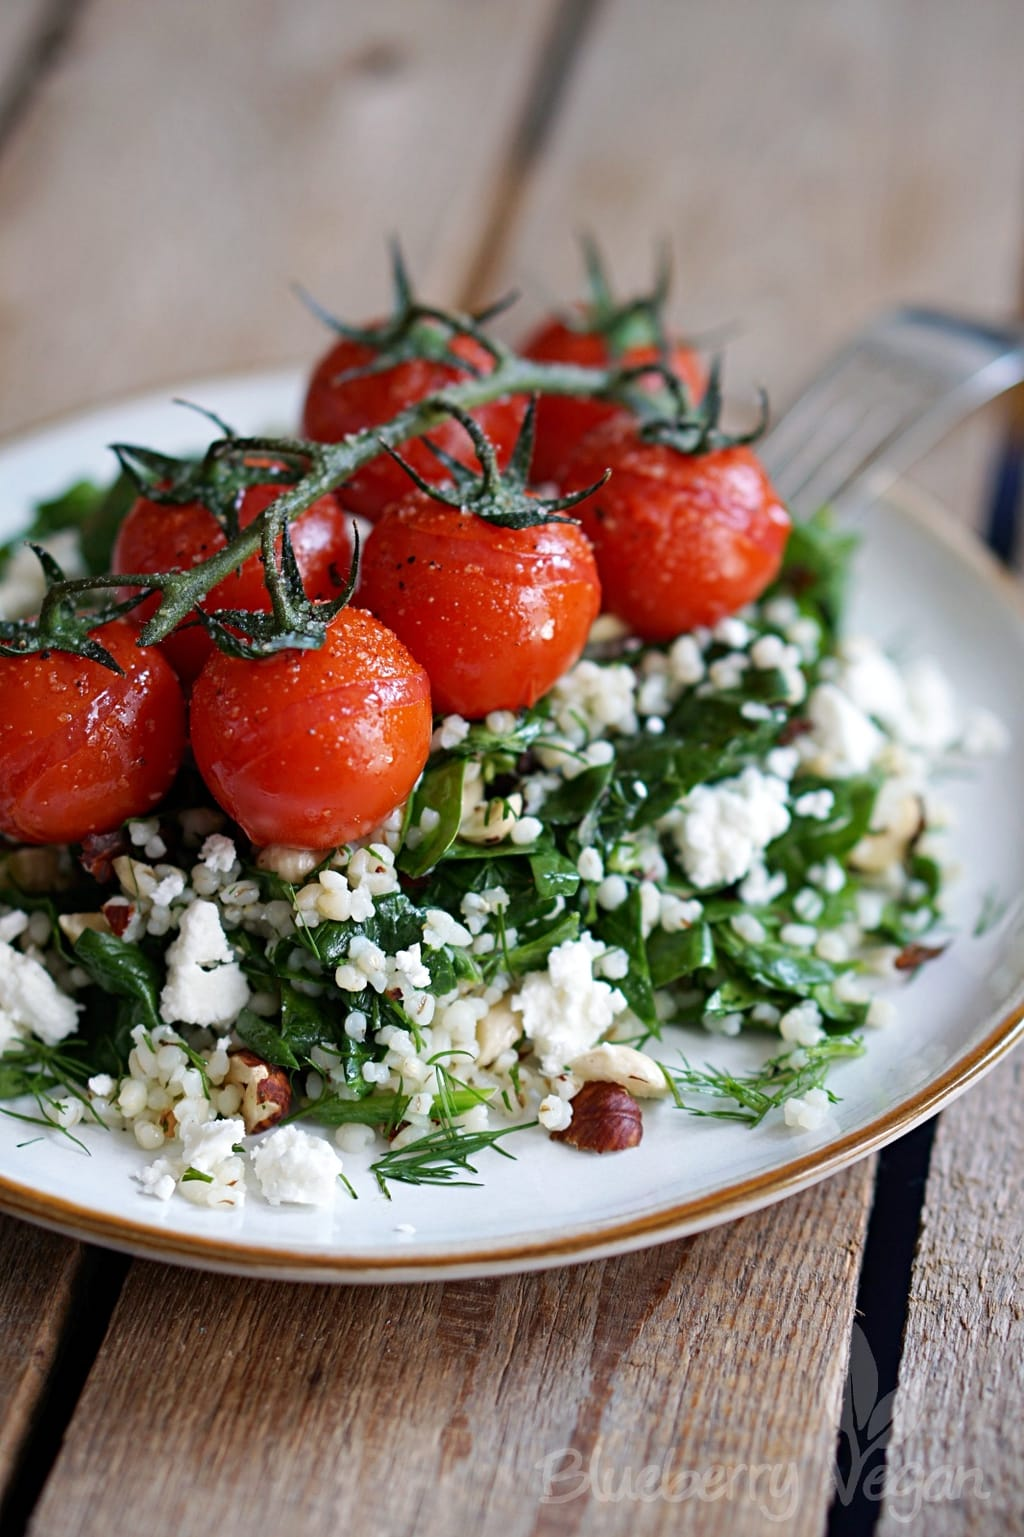 Pearl Barley Salad with Spinach and Braised Tomatoes